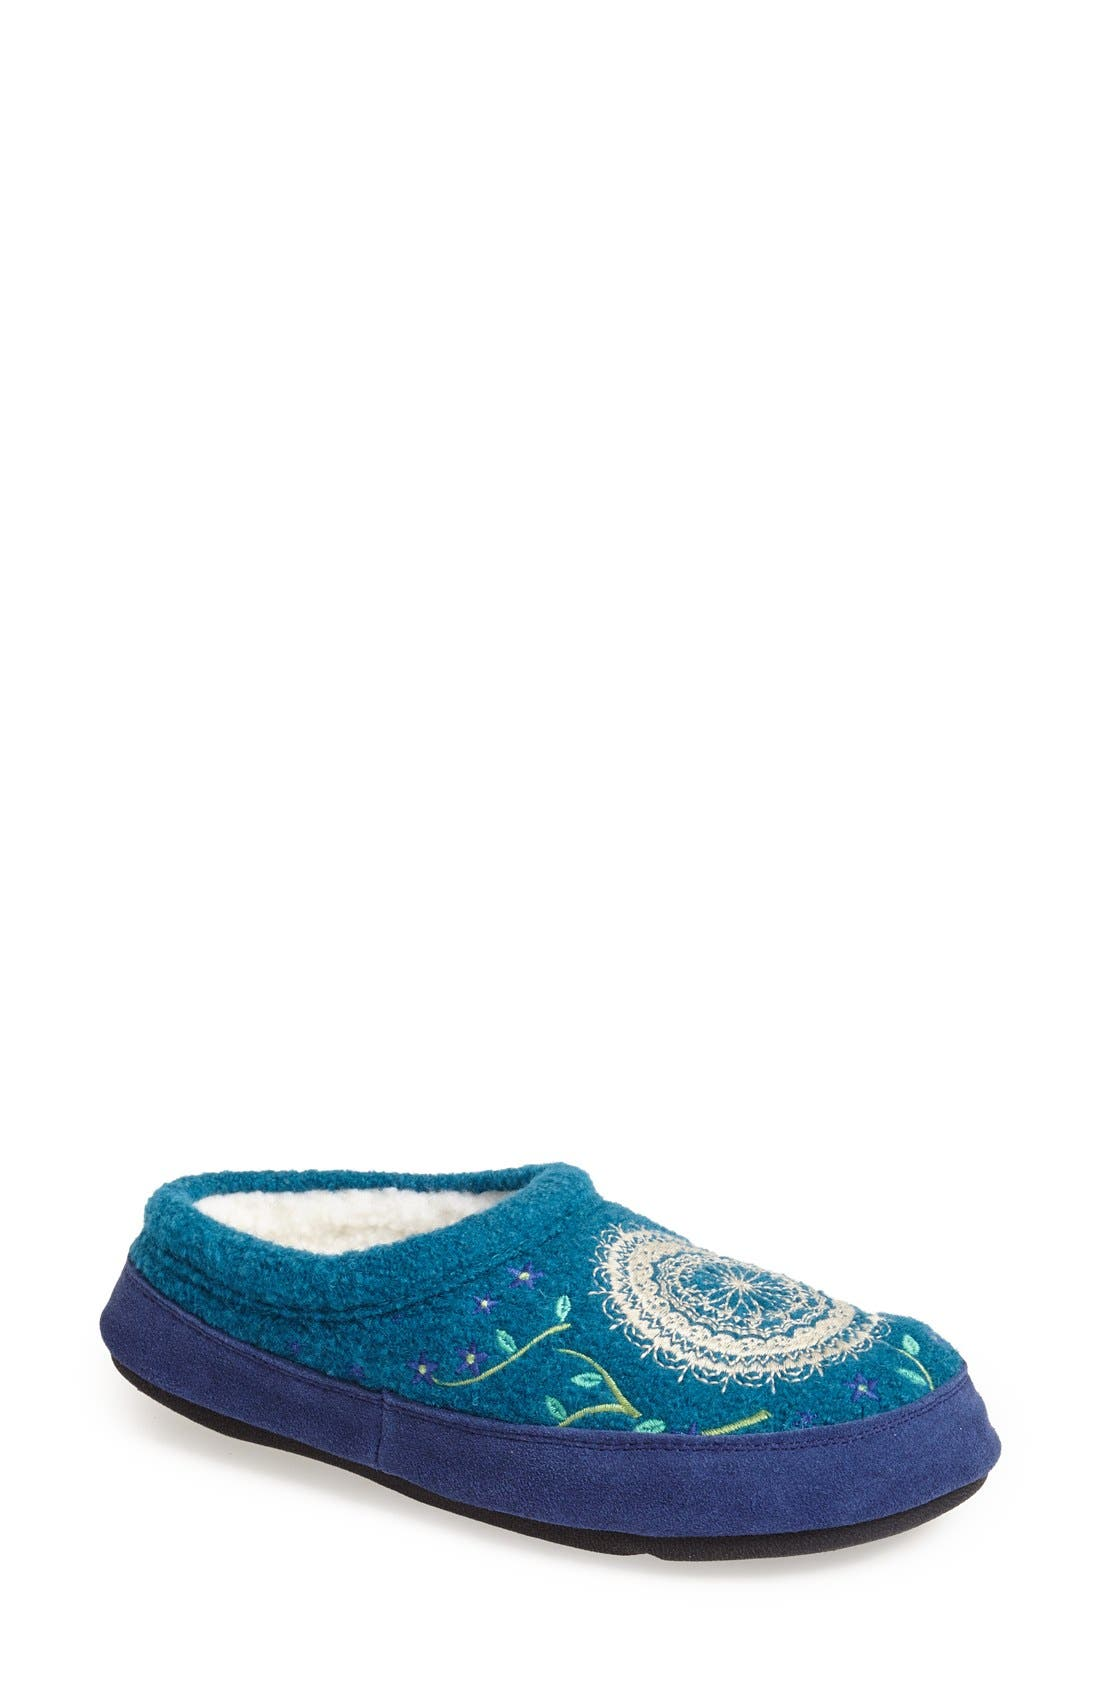 'Forest' Wool Mule Slipper,                             Main thumbnail 4, color,